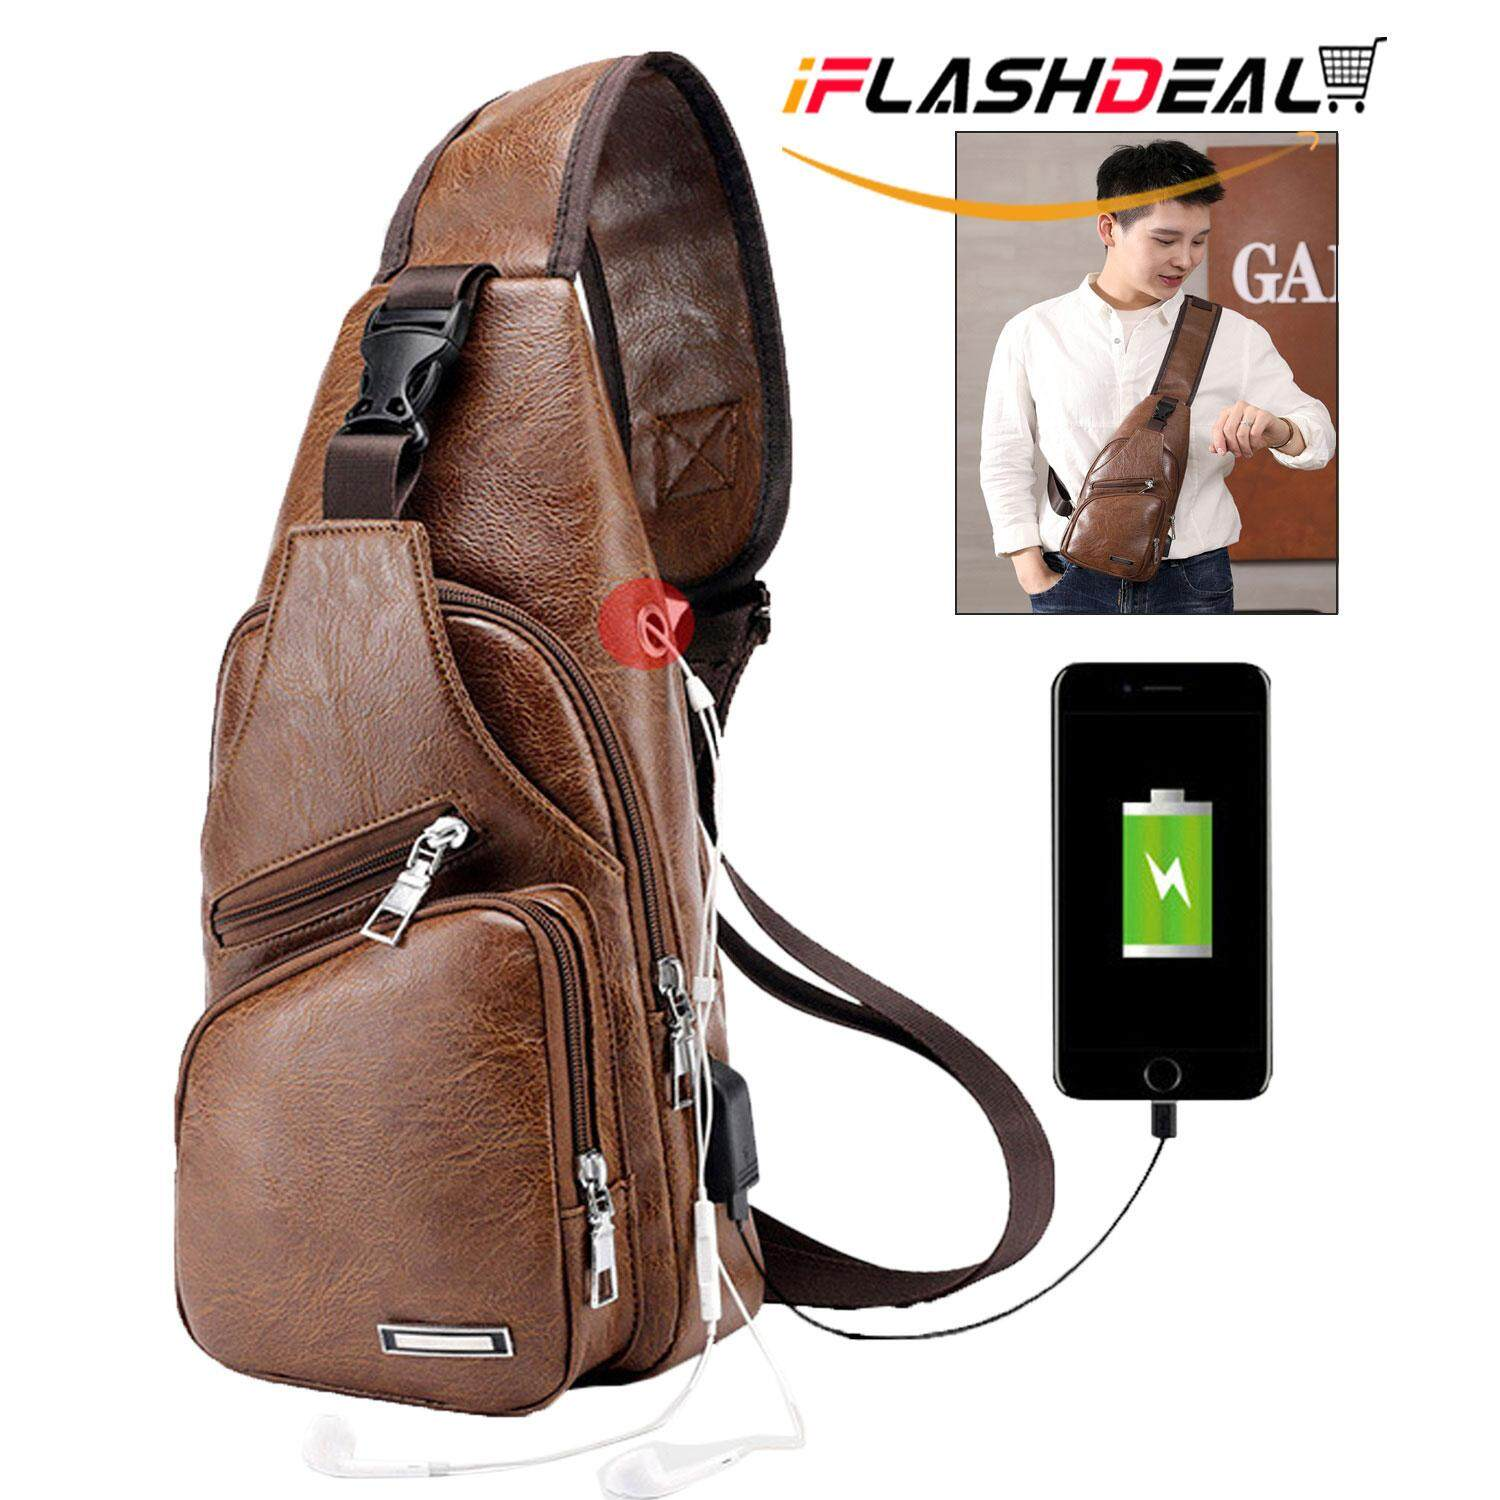 iFlashDeal Men Crossbody Sling Bags Chest Shoulder Bags PU Leather Messenger Travel Bags